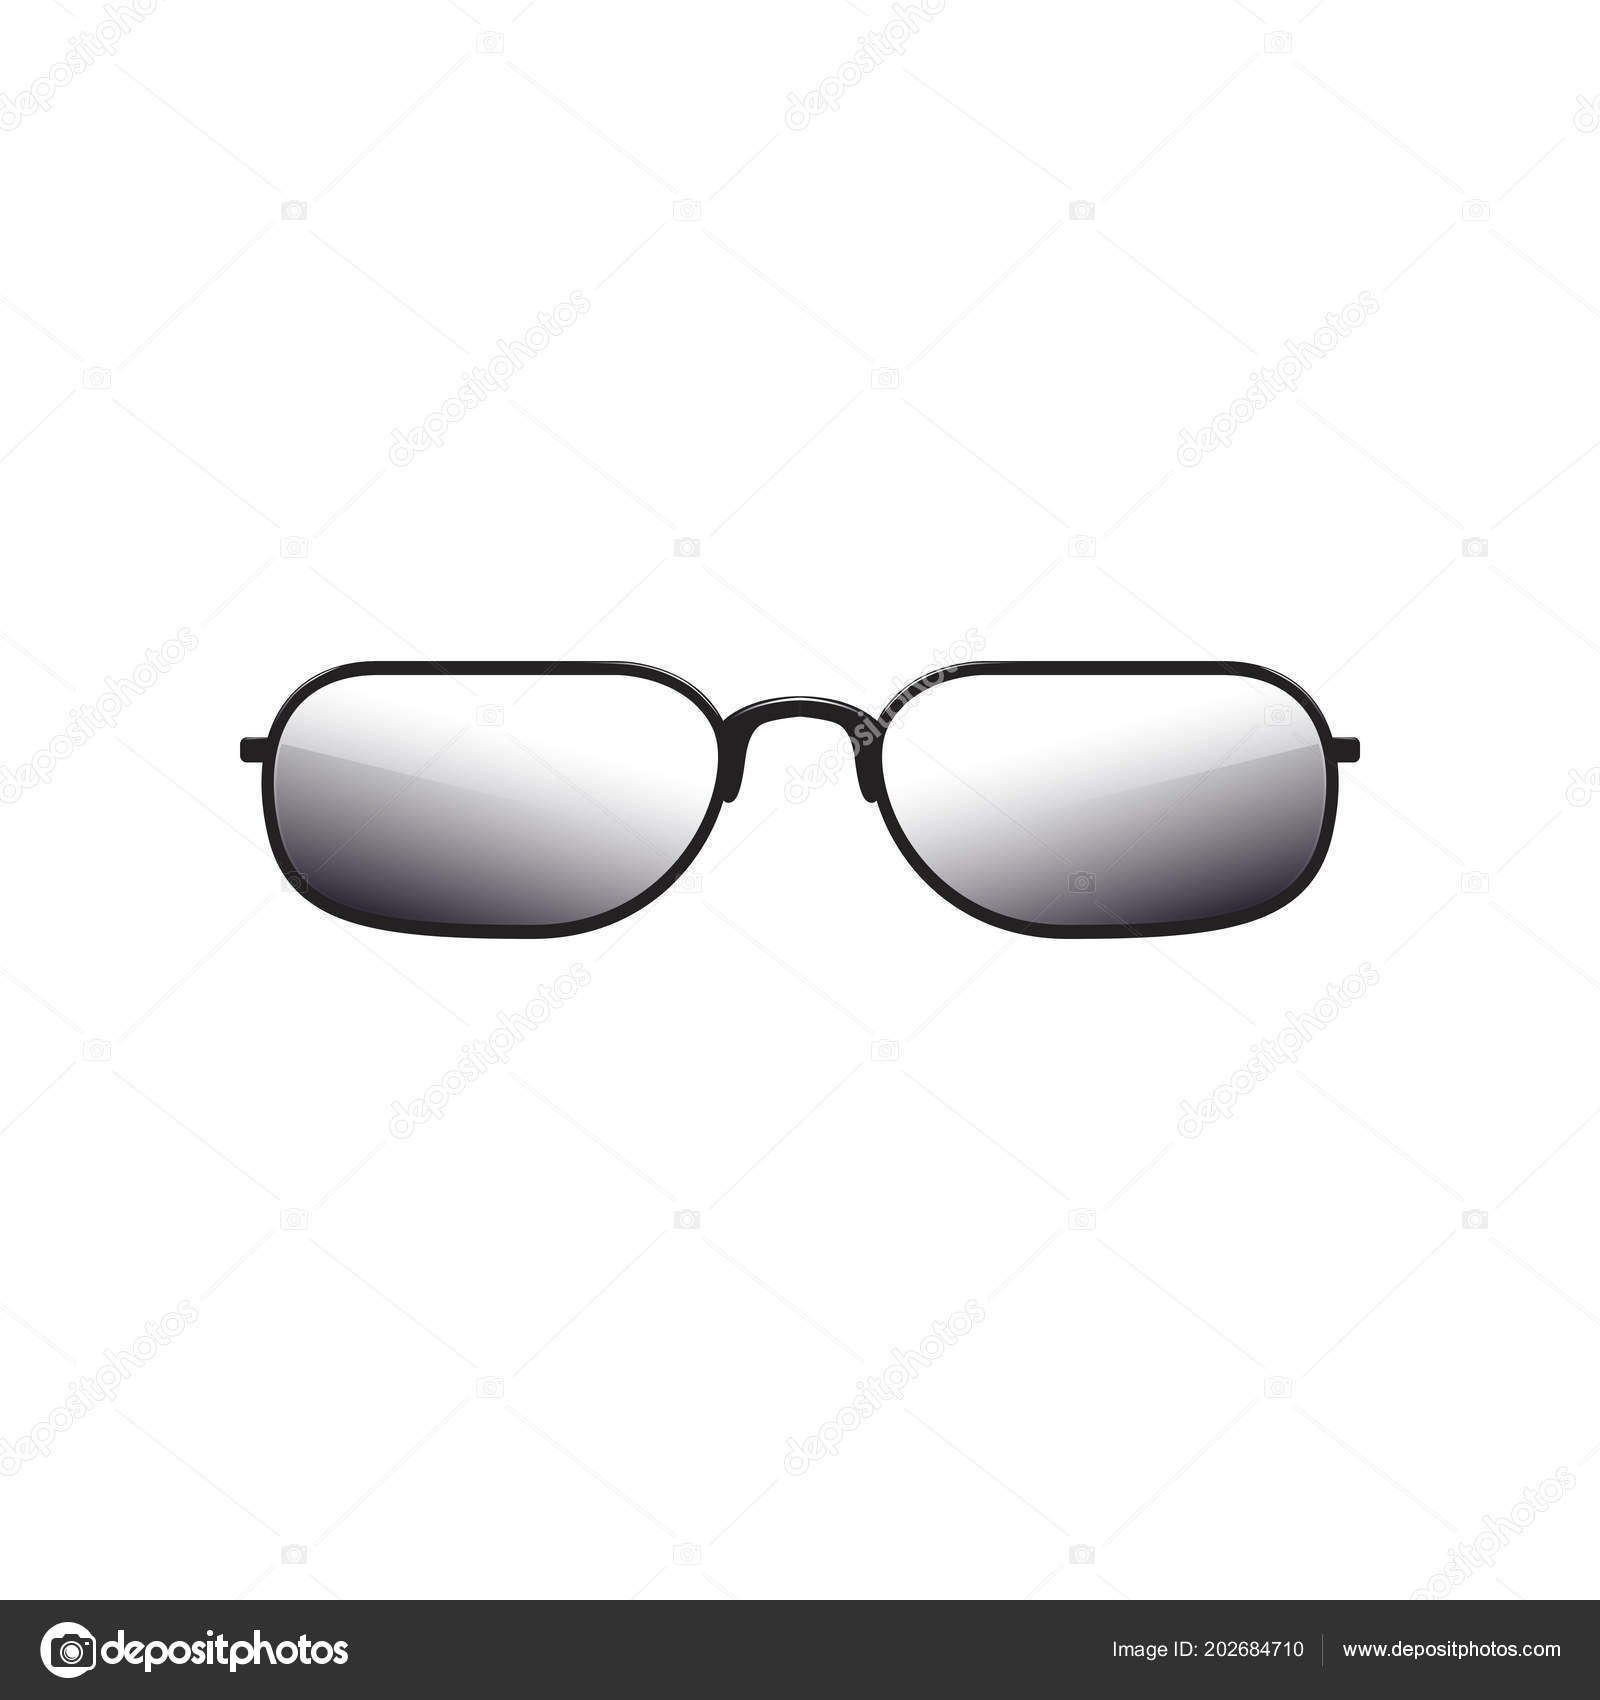 1df05351a6972 Sunglasses with tinted lenses and thick black metal frame. Cartoon icon of  protective eyewear for men or women. Colorful design for mobile app. Flat  vector ...